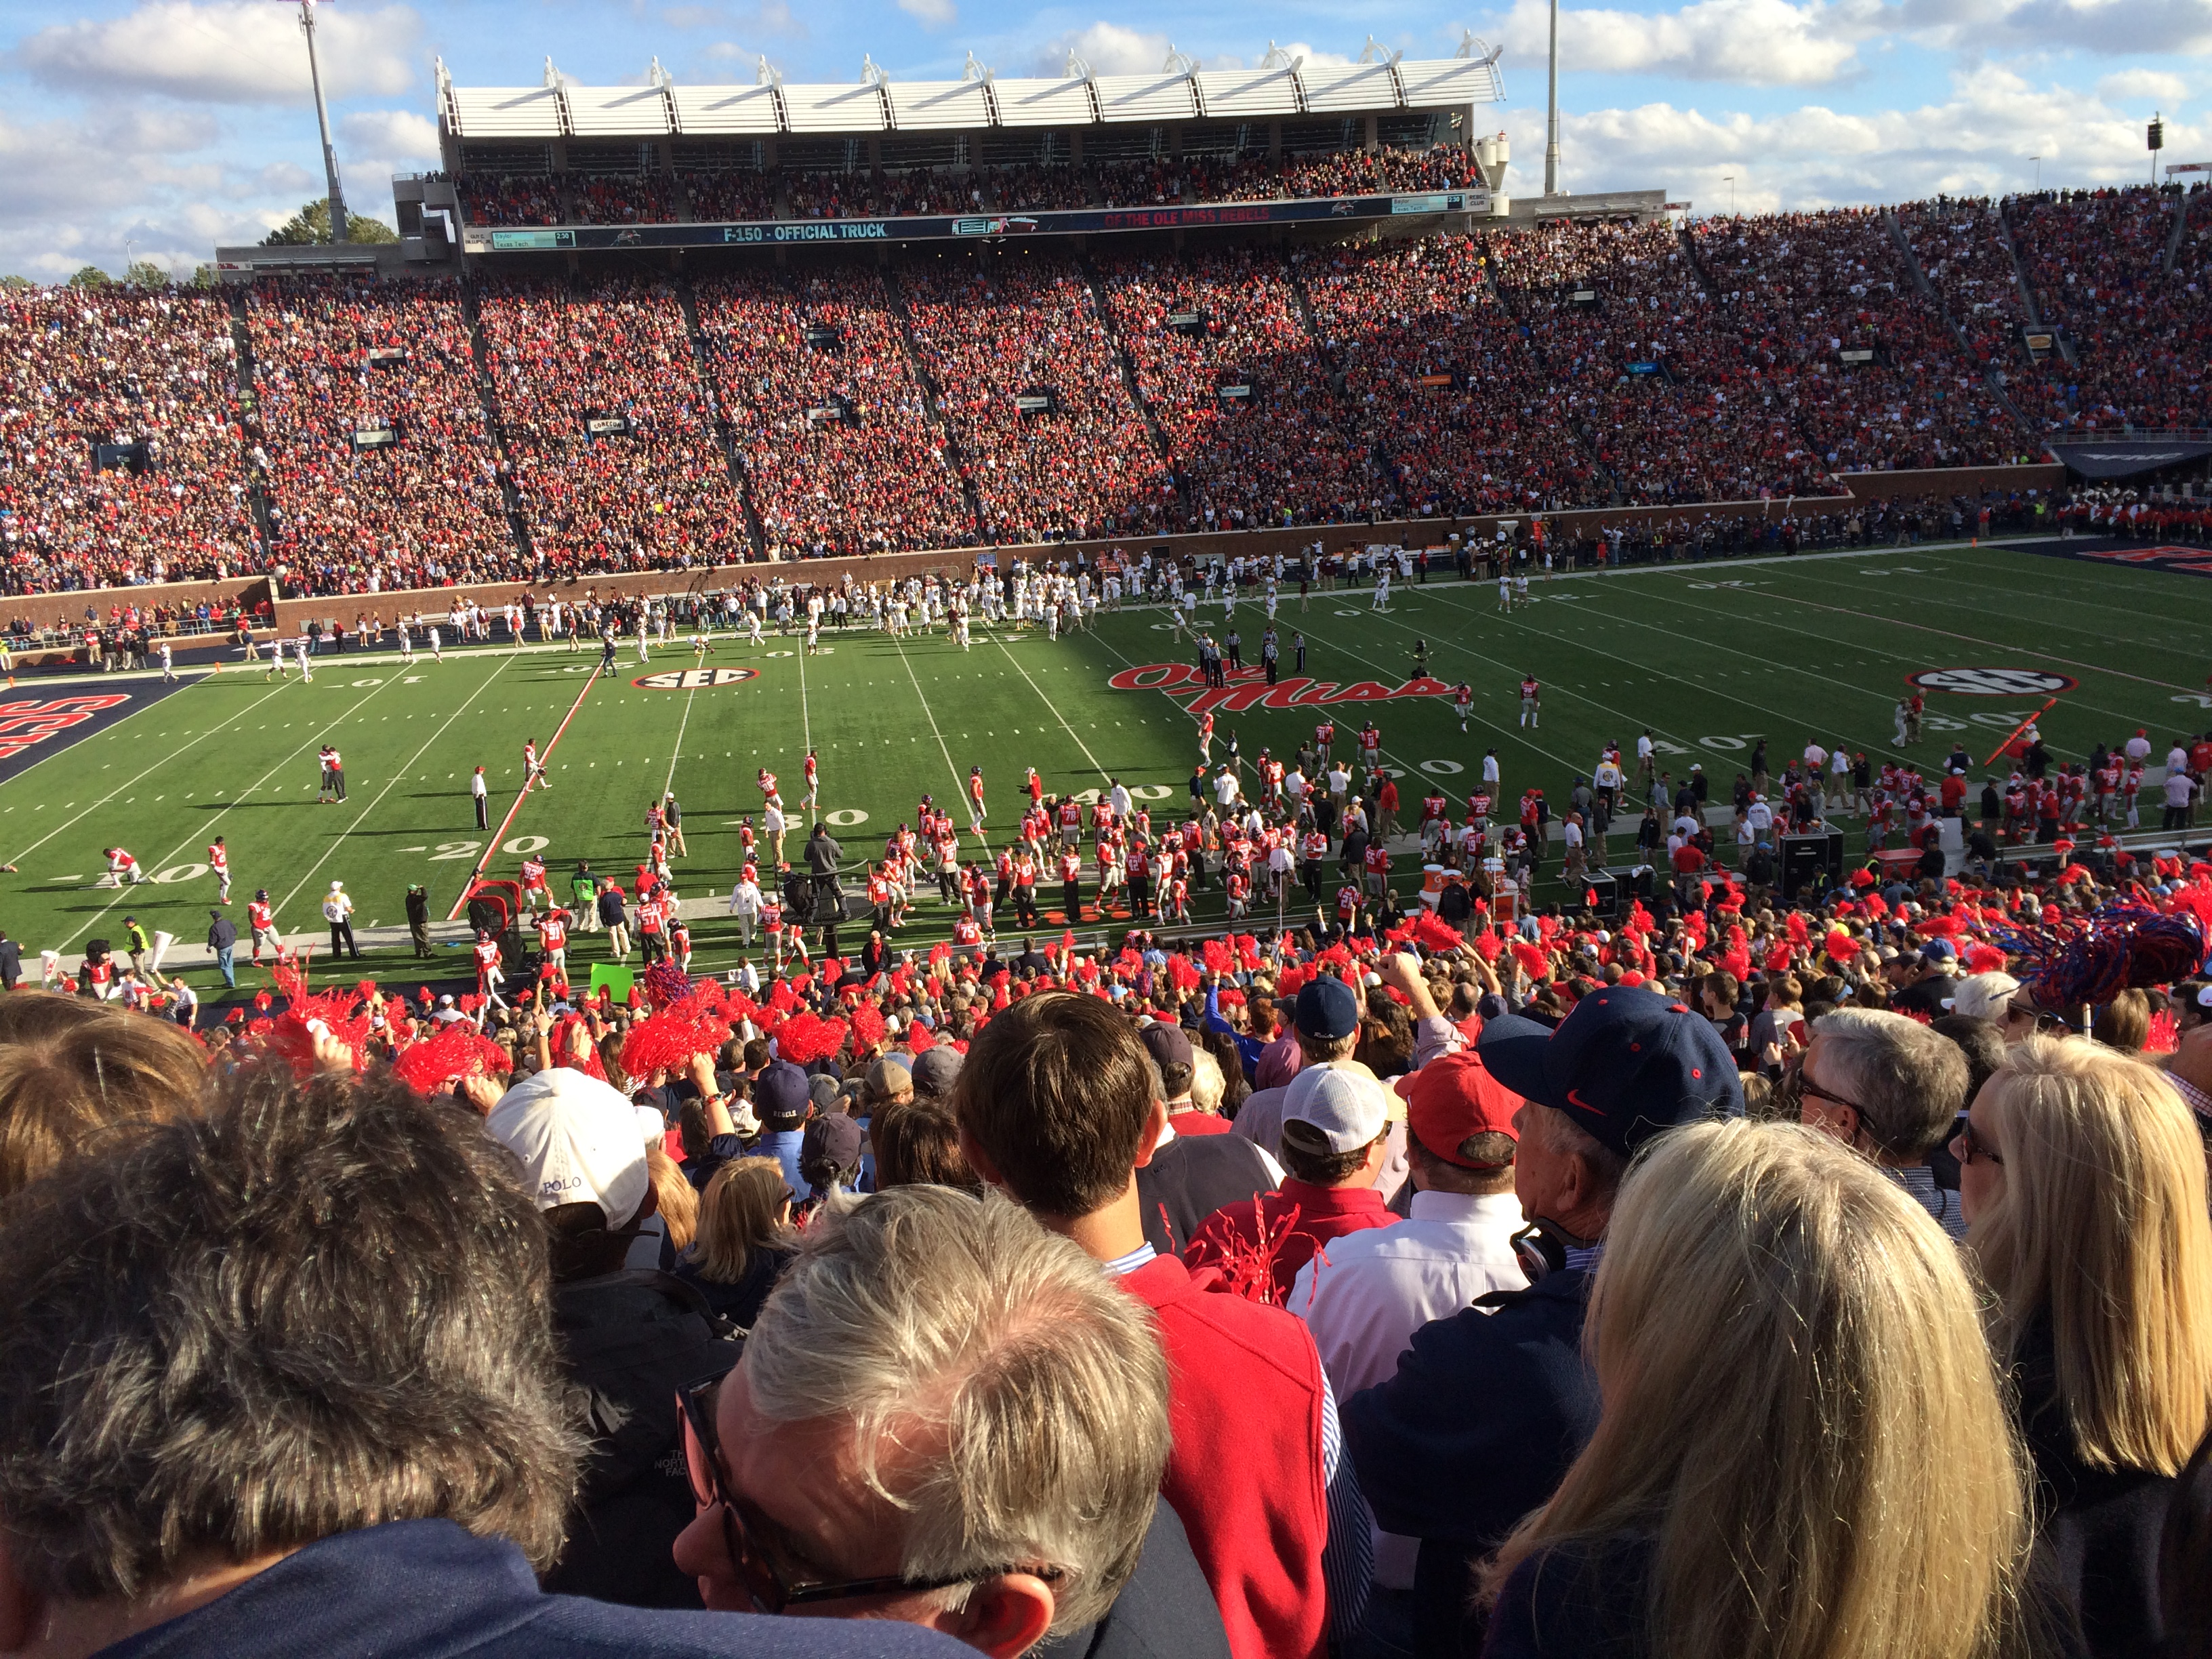 This picture does not do the event justice: we went to an SEC football game (Ole Miss v. Miss State), and WOW.  Those Rebels know how to celebrate.  Hotty Toddy!